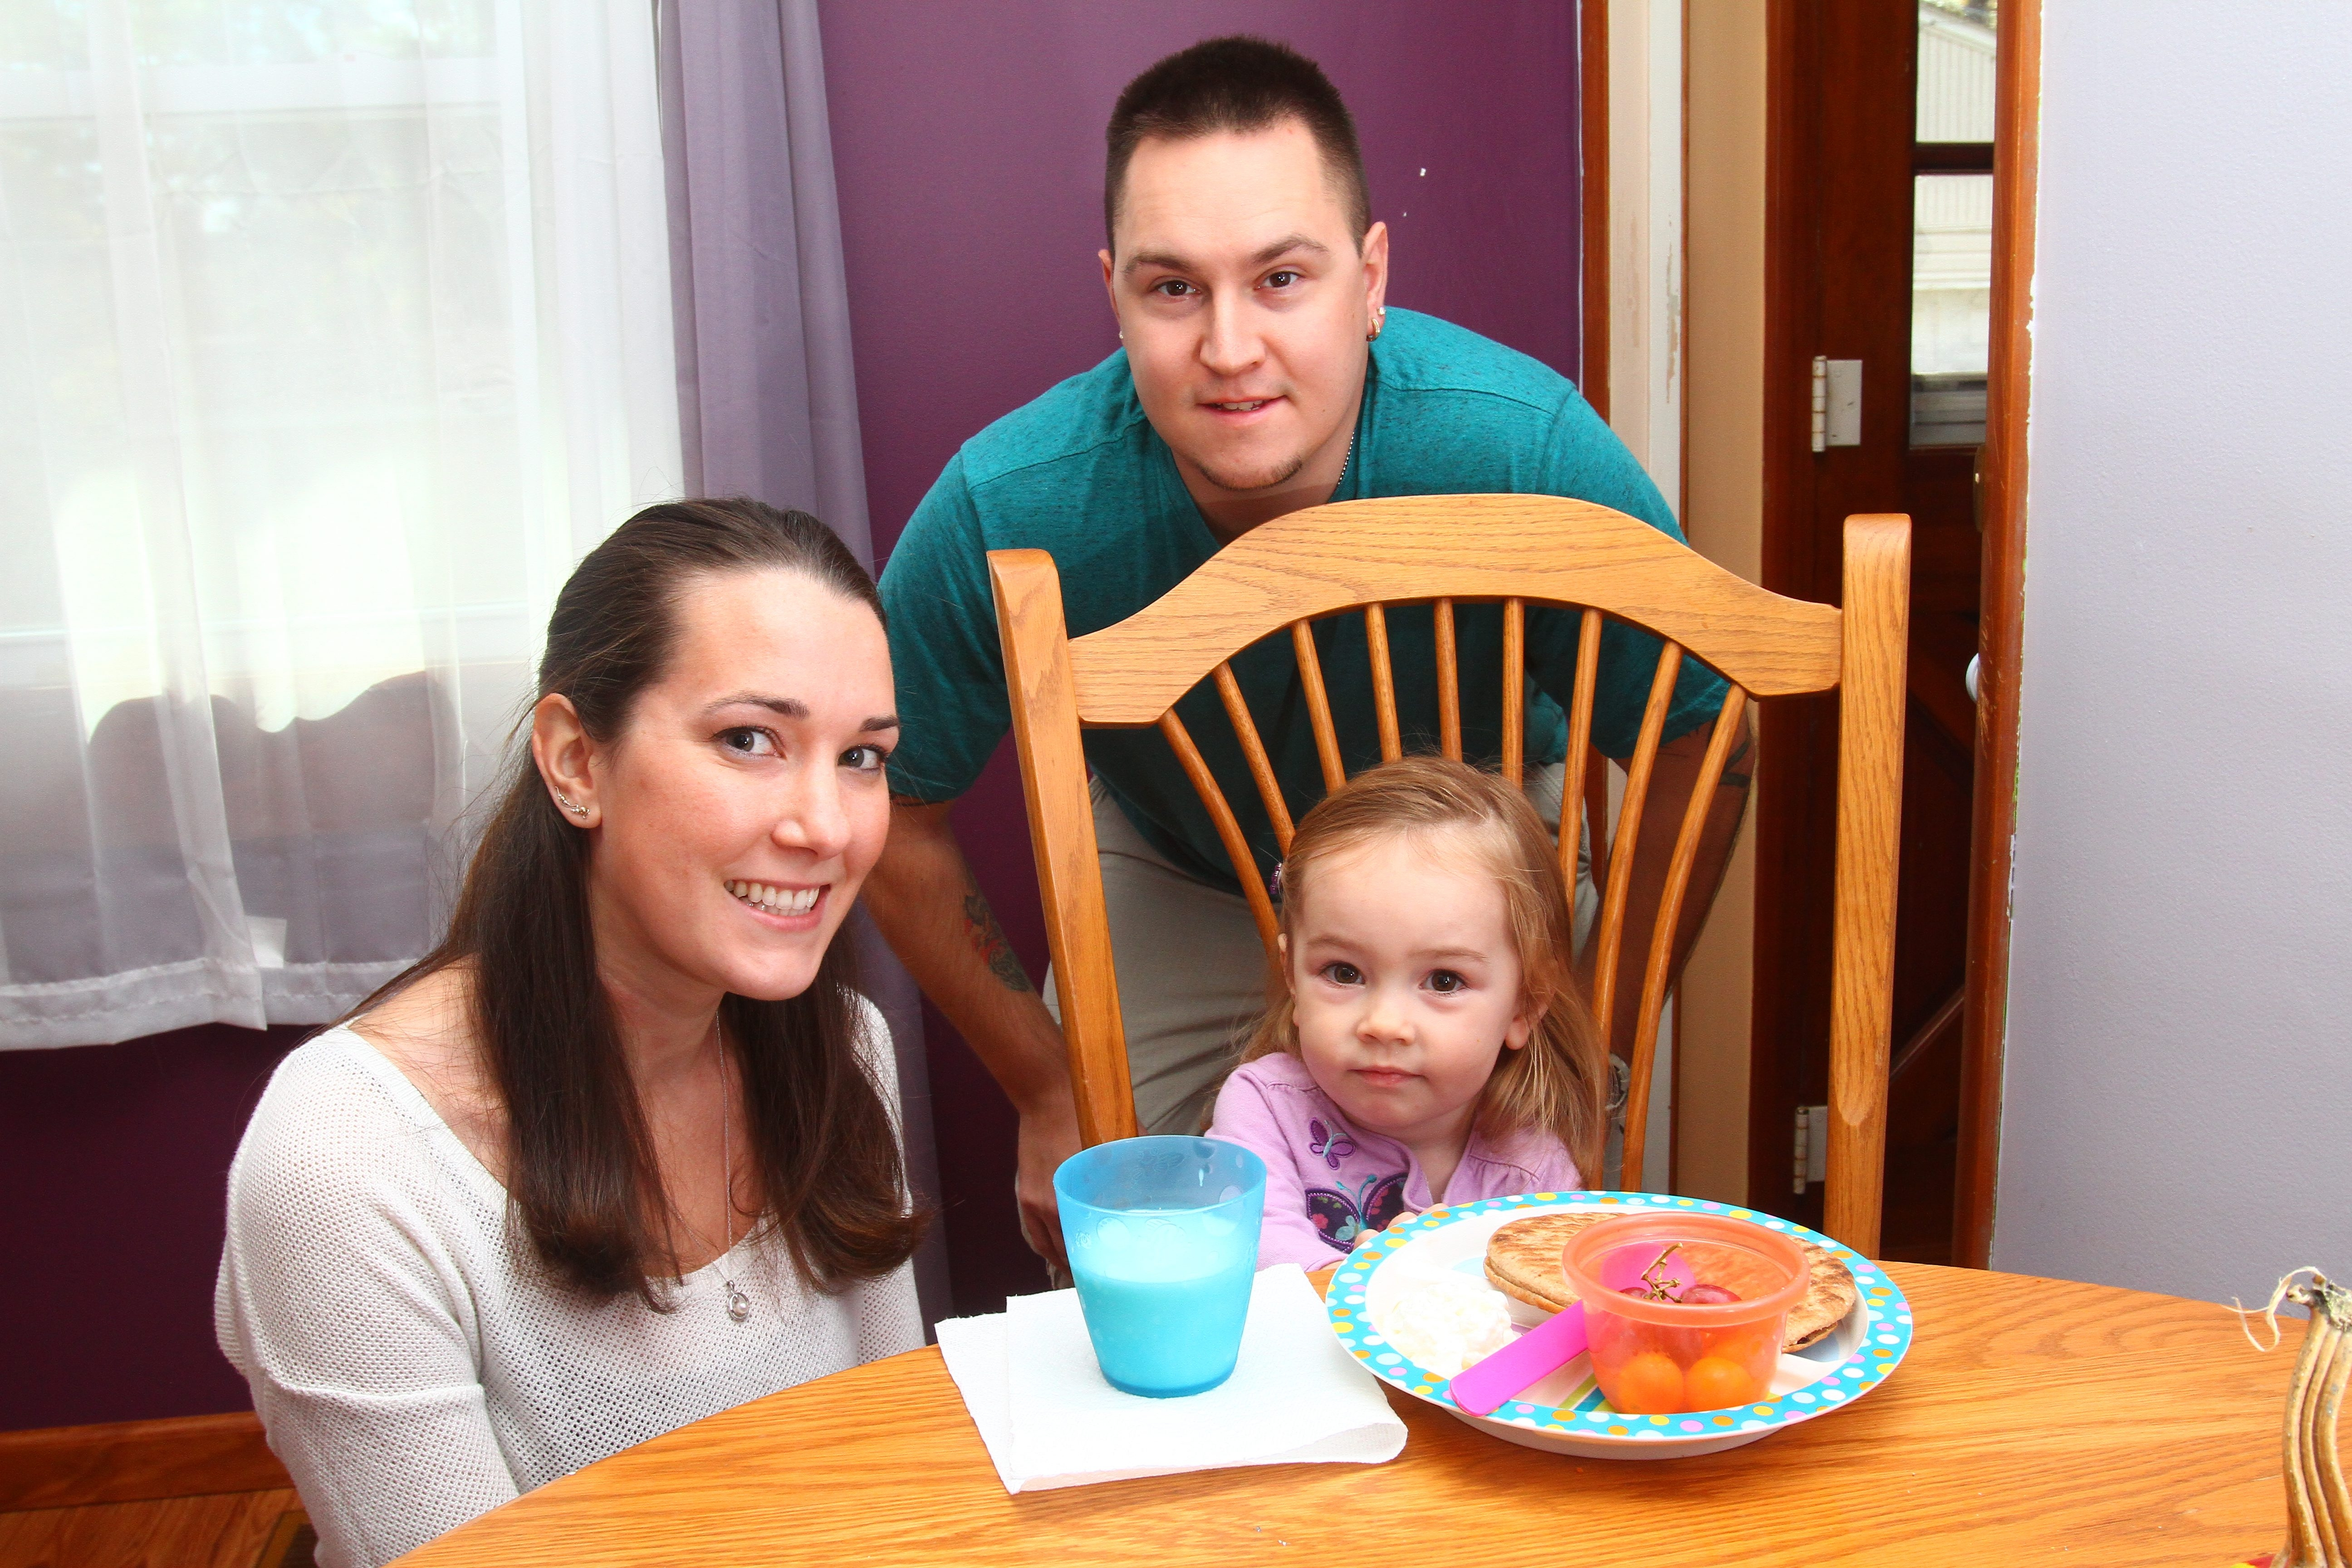 Danyel Brewer, husband Rich and 2-year-old daughter, Kayliegh.